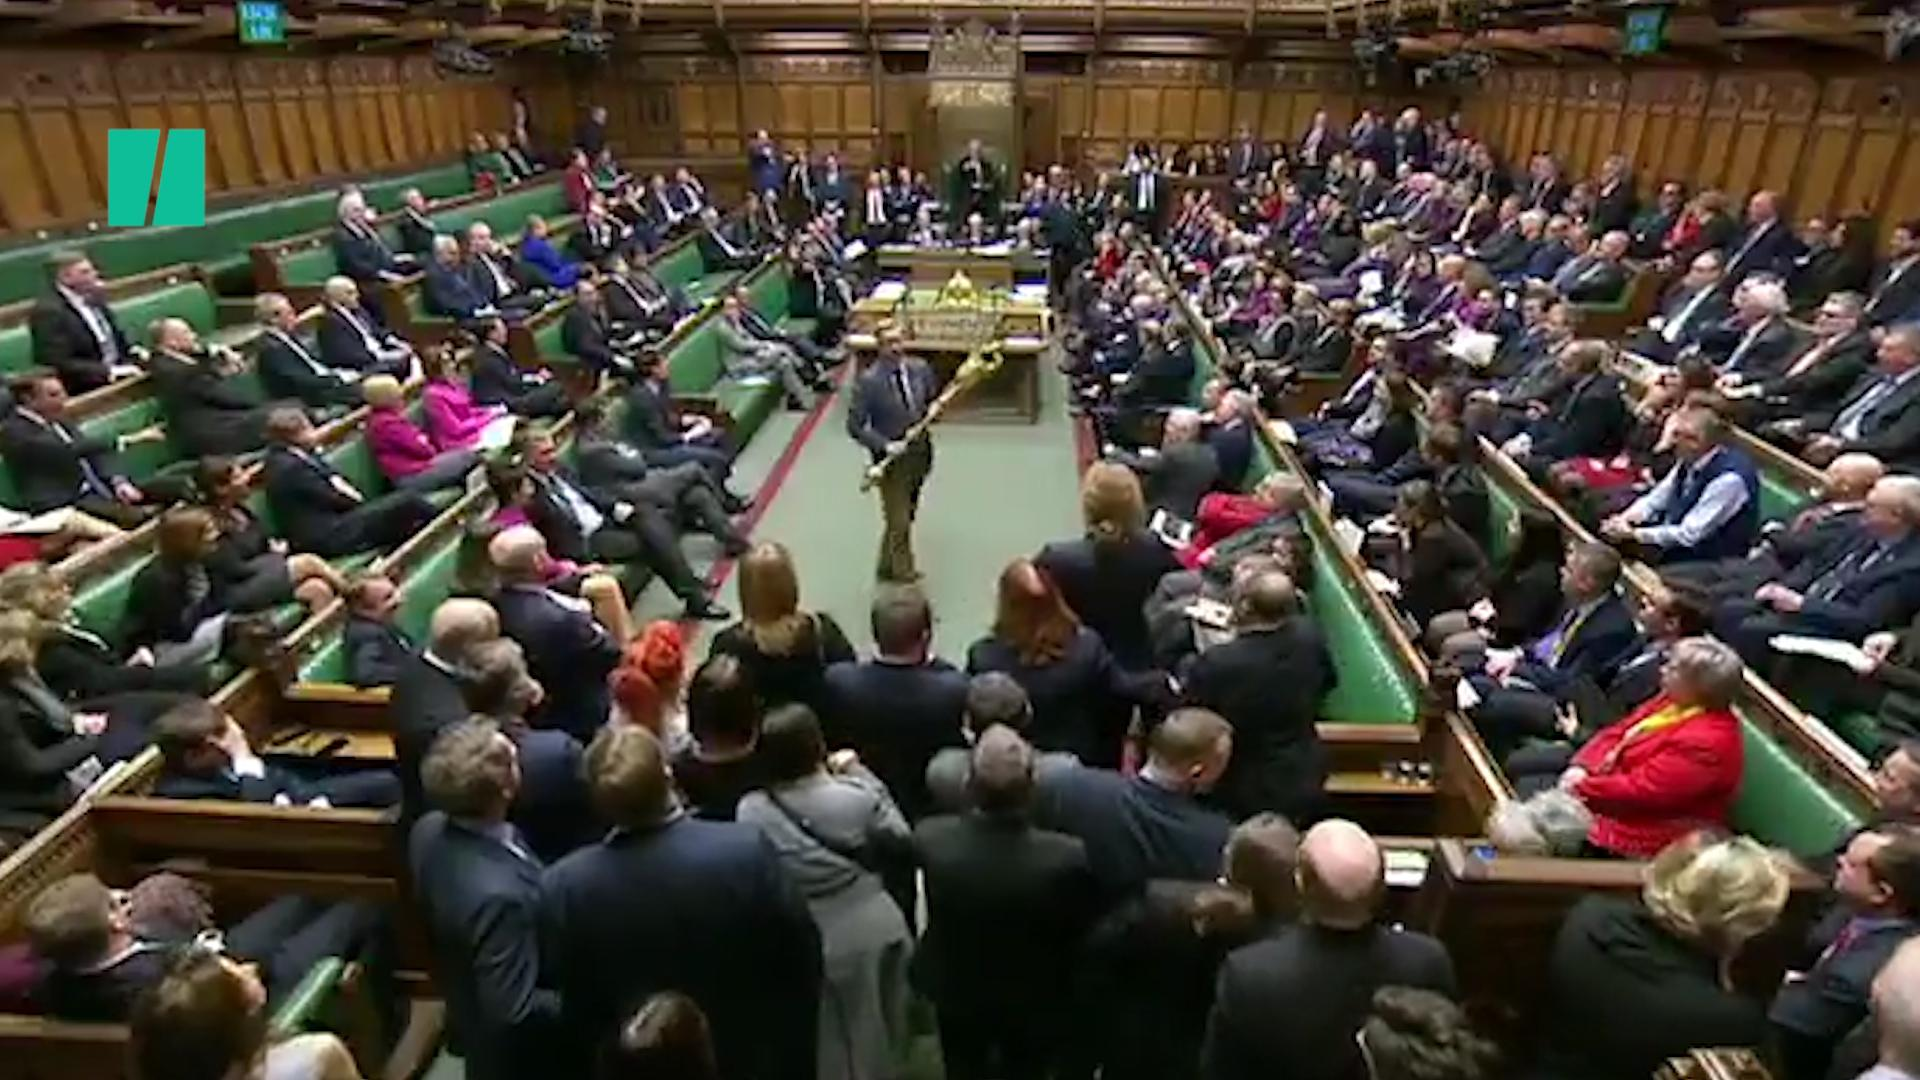 Labour MP Grabs Ceremonial Mace In Brexit Protest | HuffPost UK